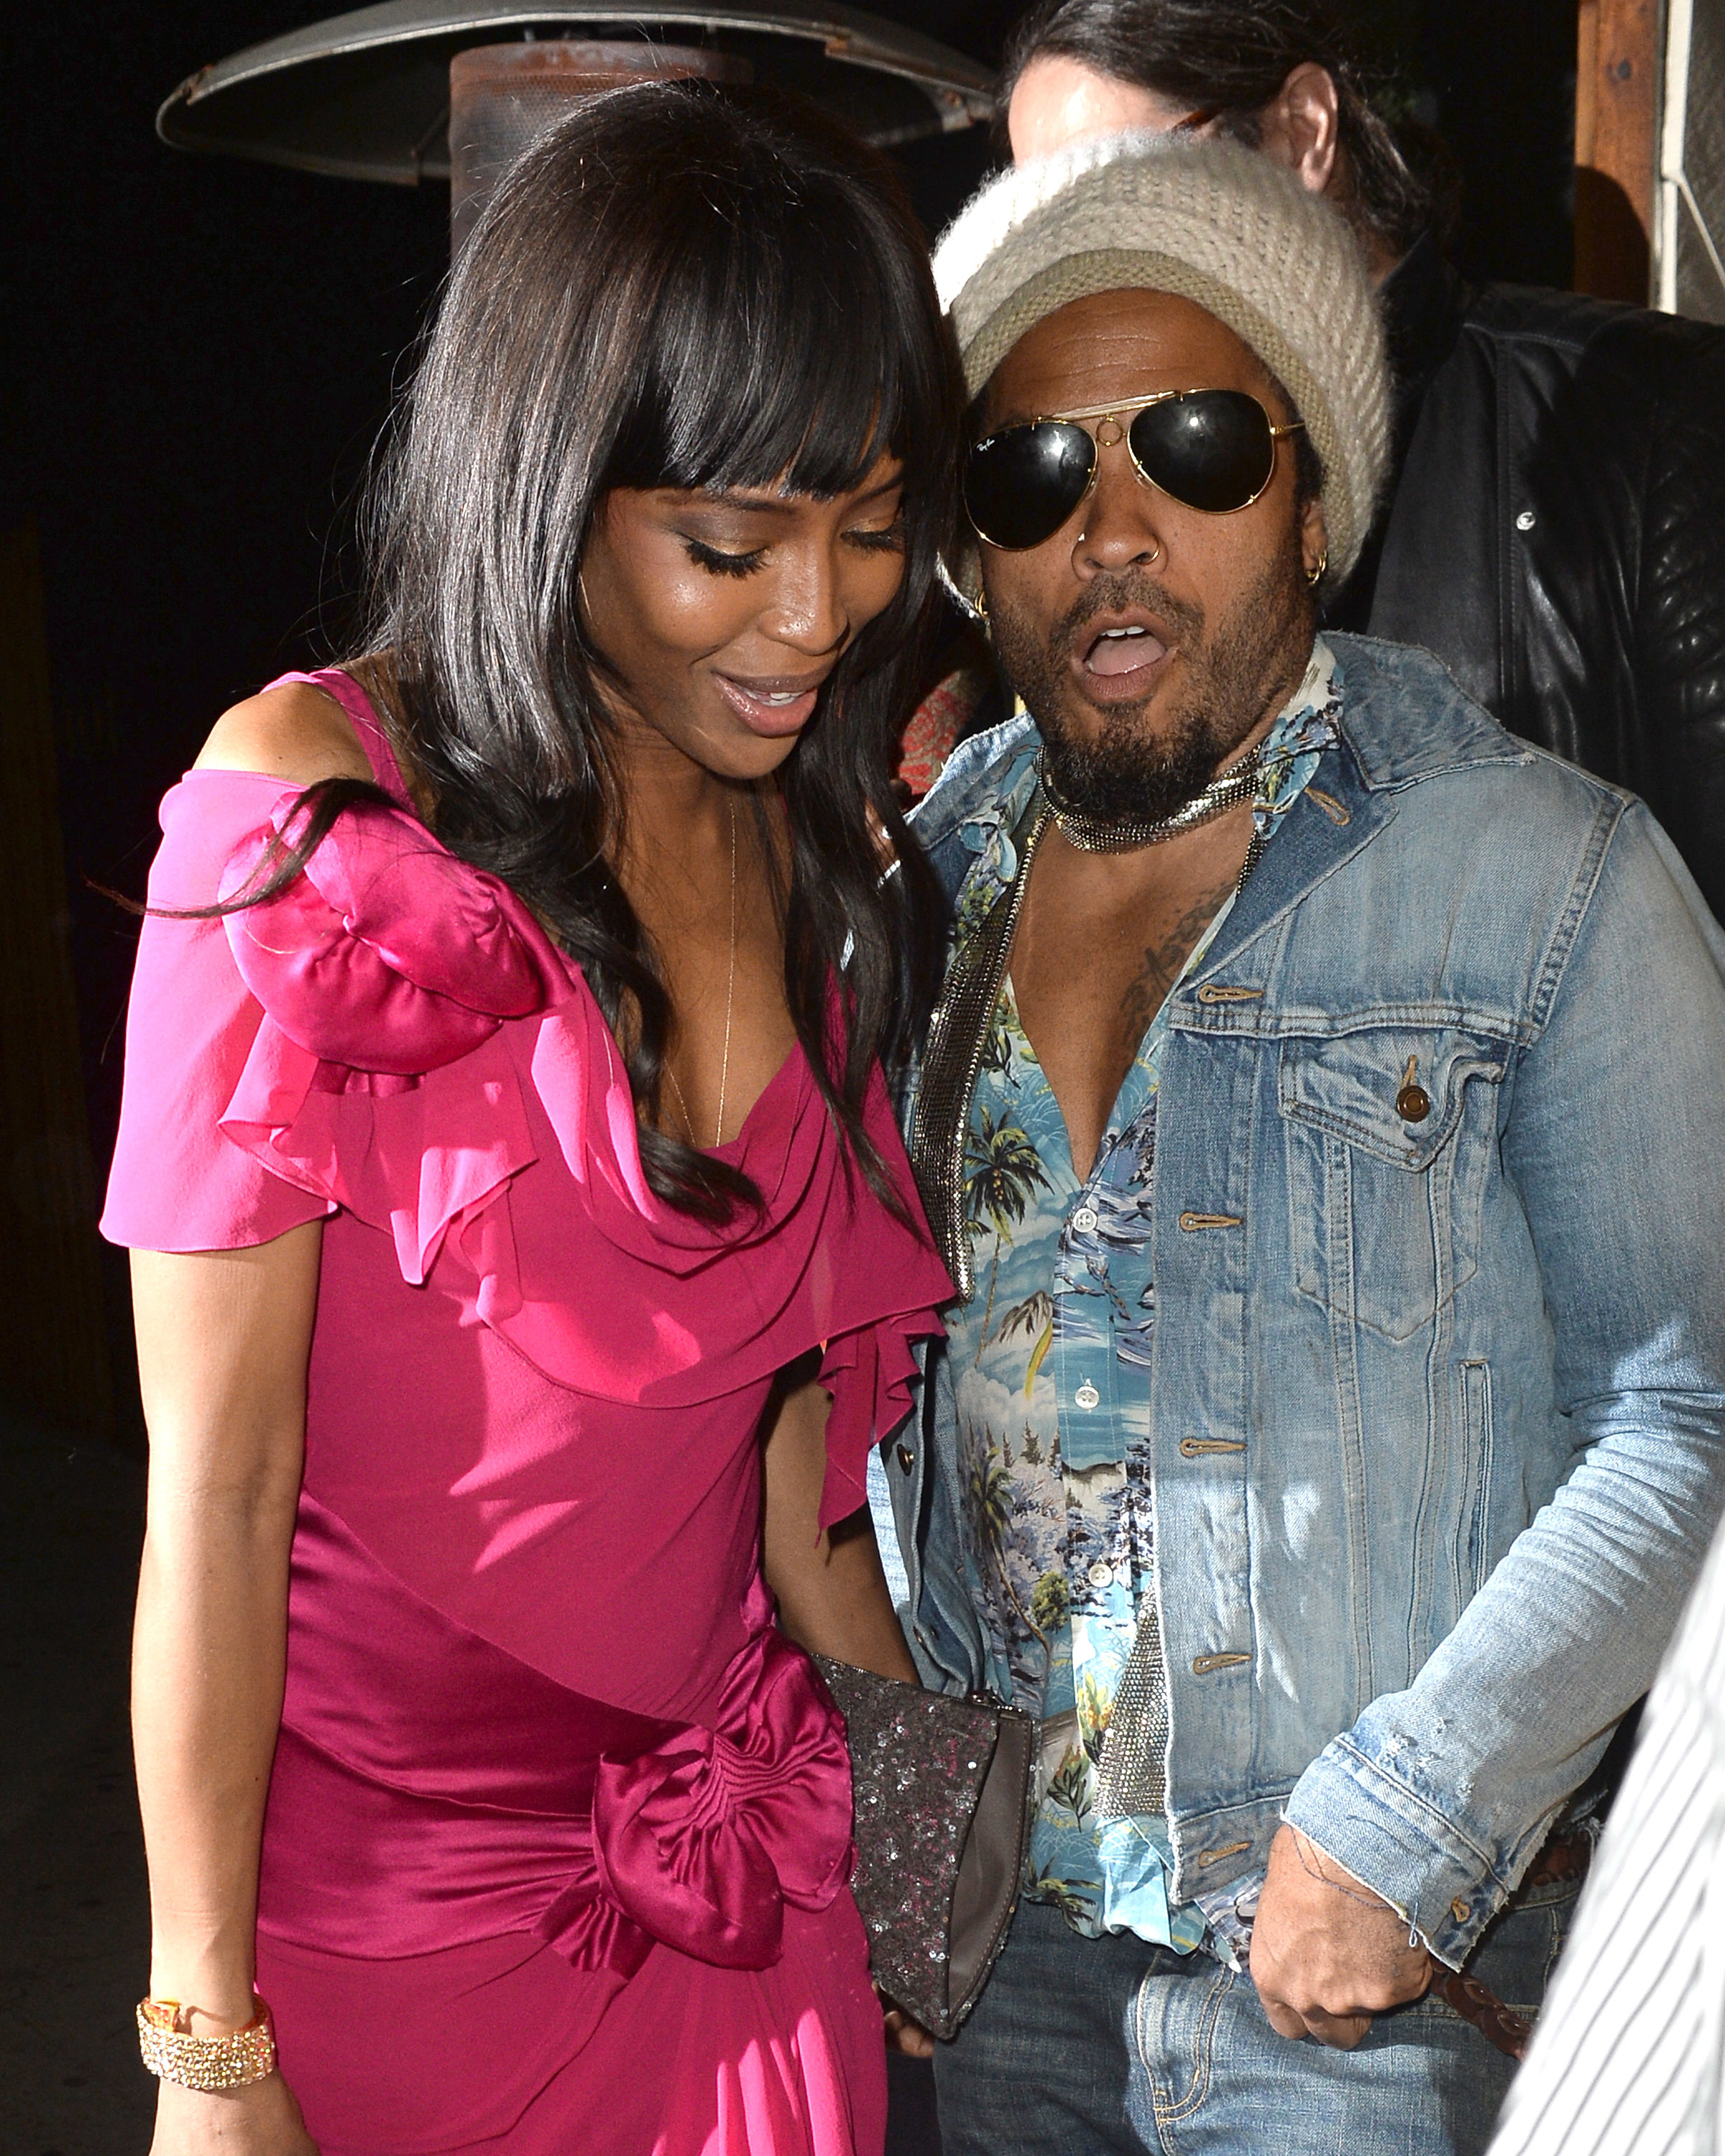 Are Naomi Campbell and Lenny Kravitz dating?